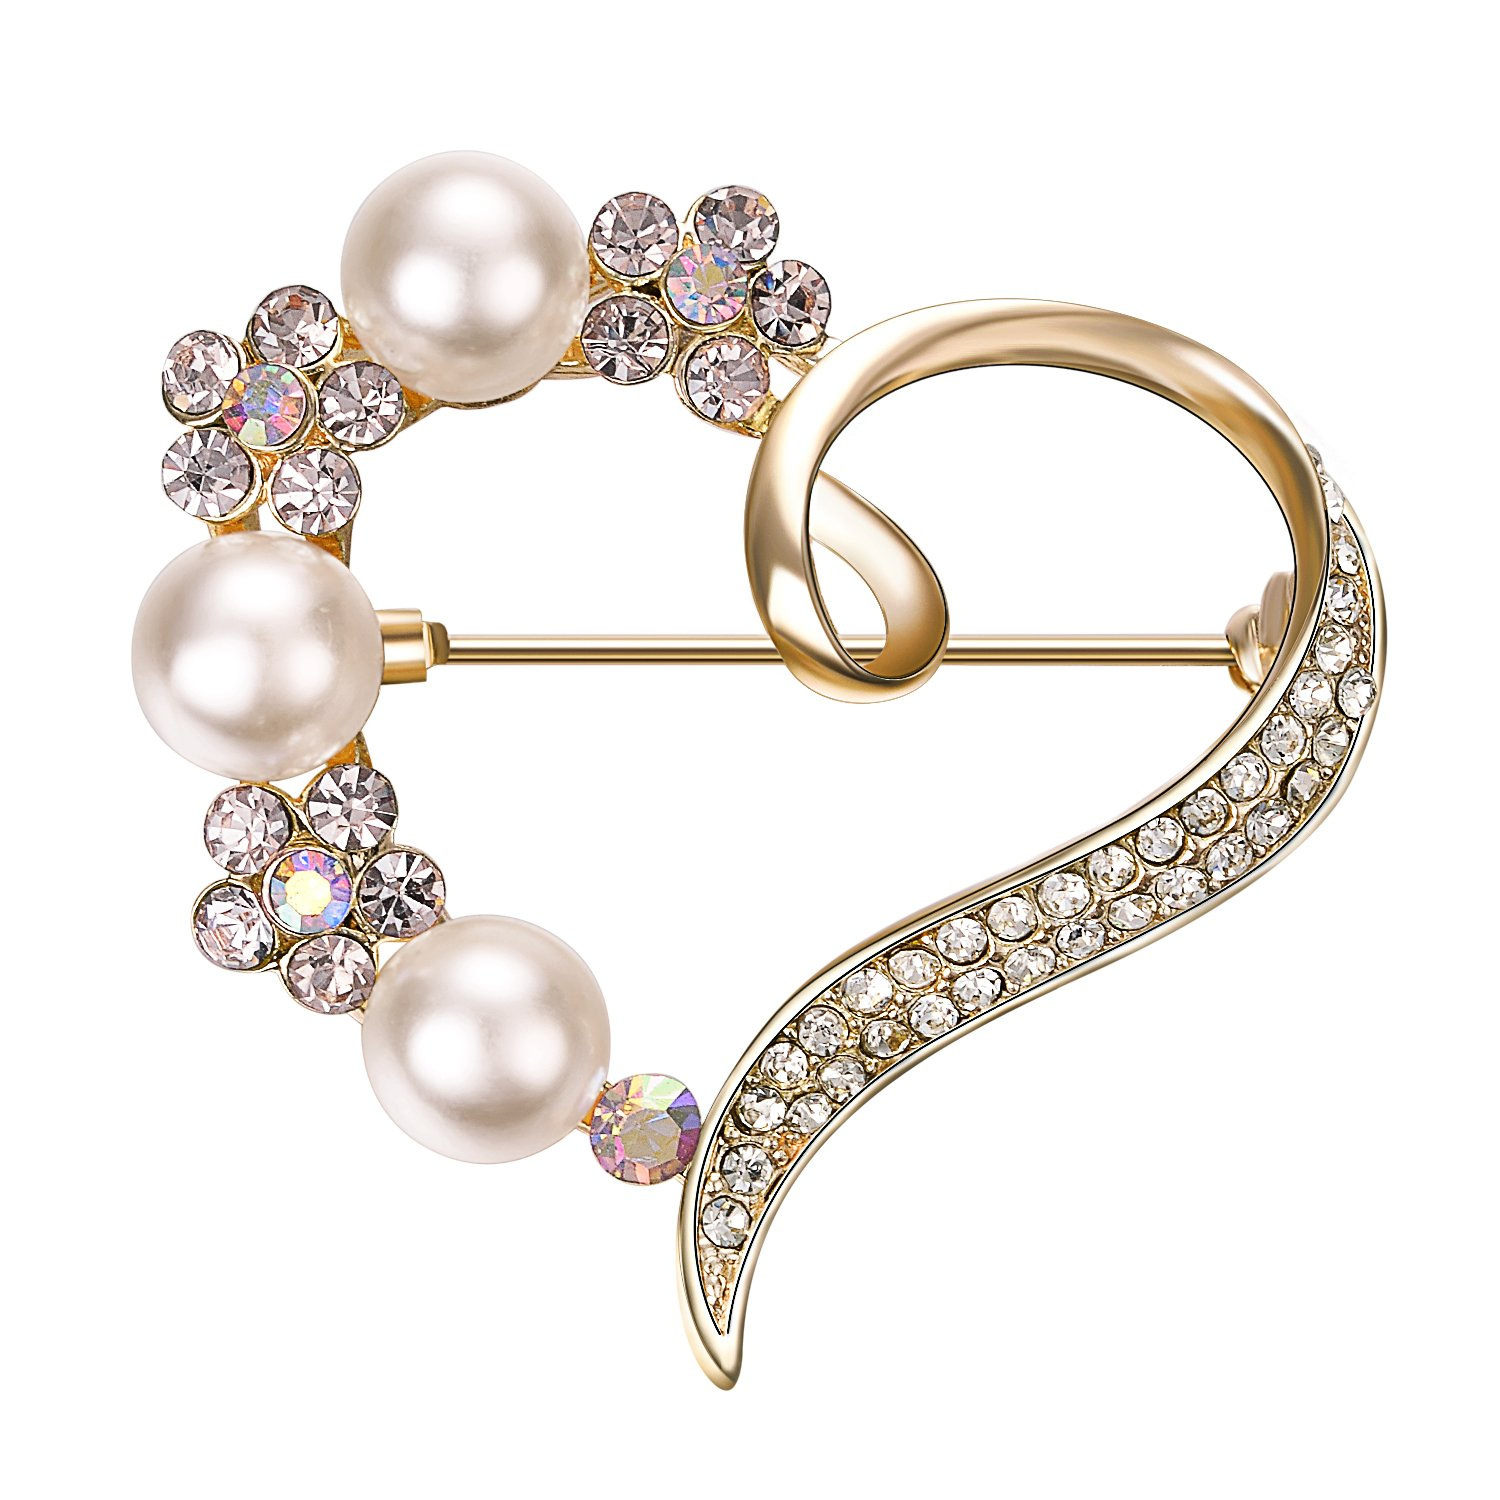 Yoursfs Love Heart Brooch Pin Style Delicate Simulate Pearl Rhinestone Rose Gold Plated Cocktail Dess Gift